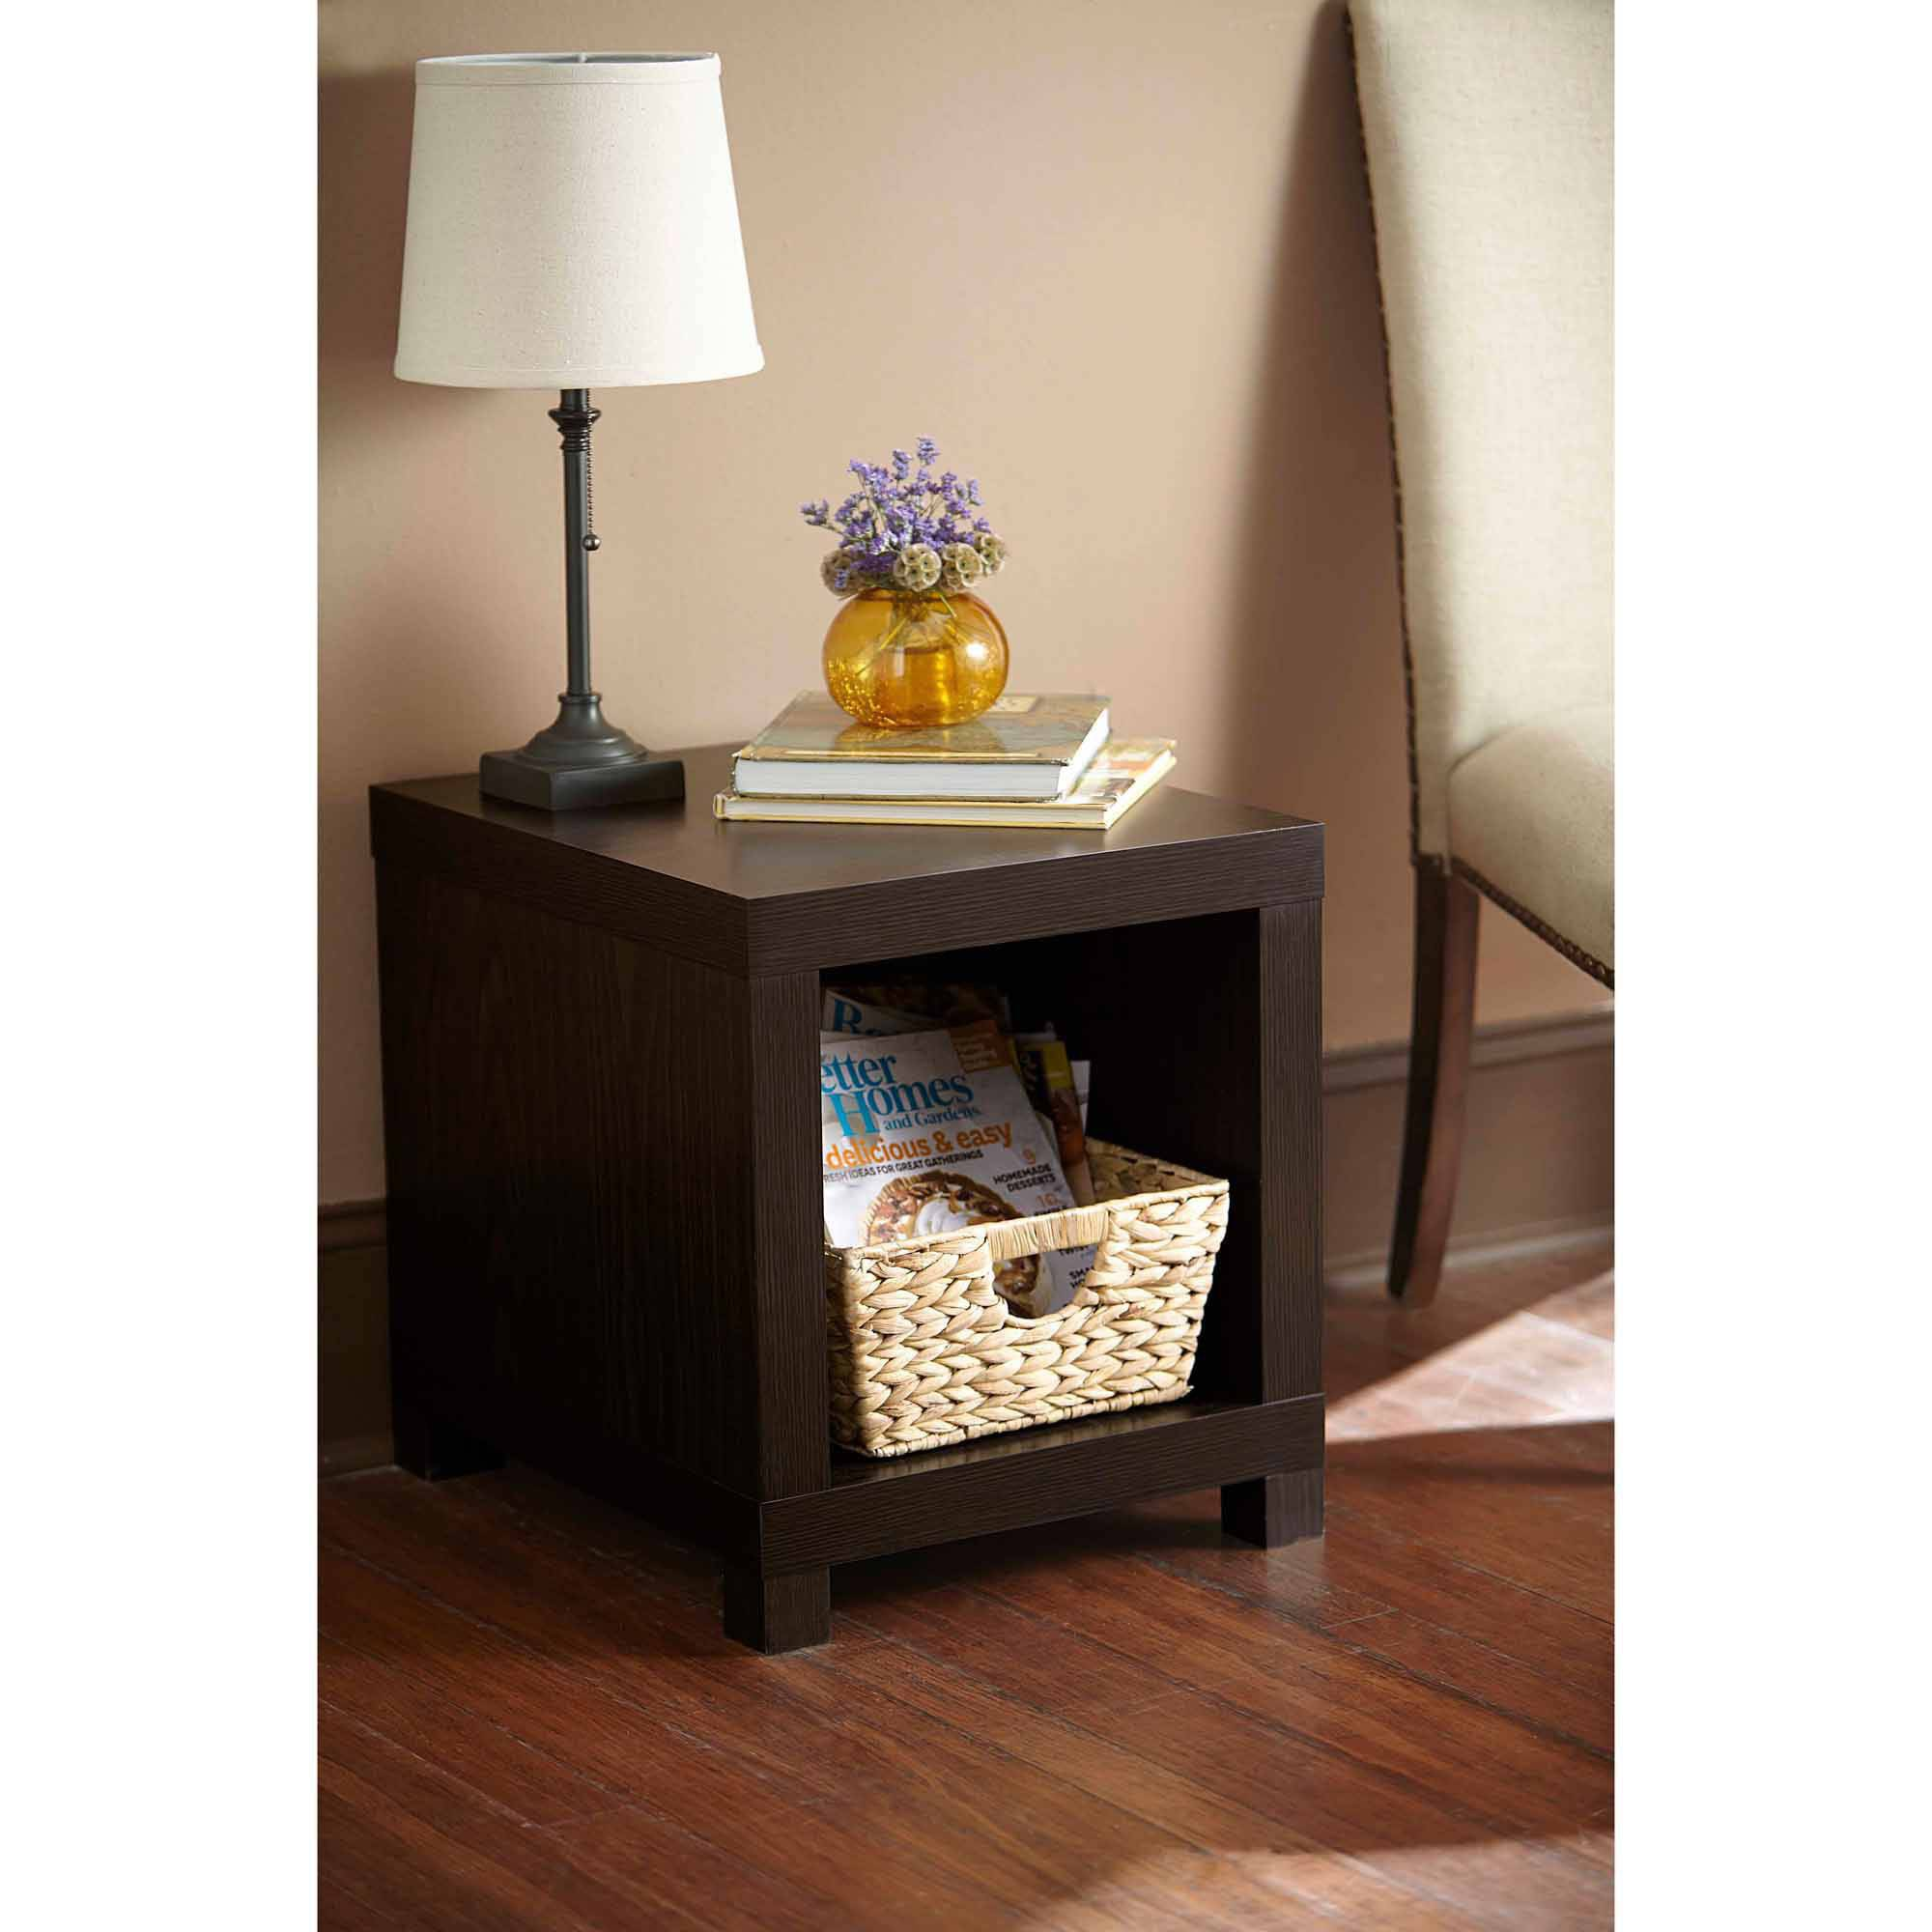 better homes gardens accent table multiple colors tables for living room small student desk narrow behind sofa two chairs and essentials patio oak bedside dining cordless standing